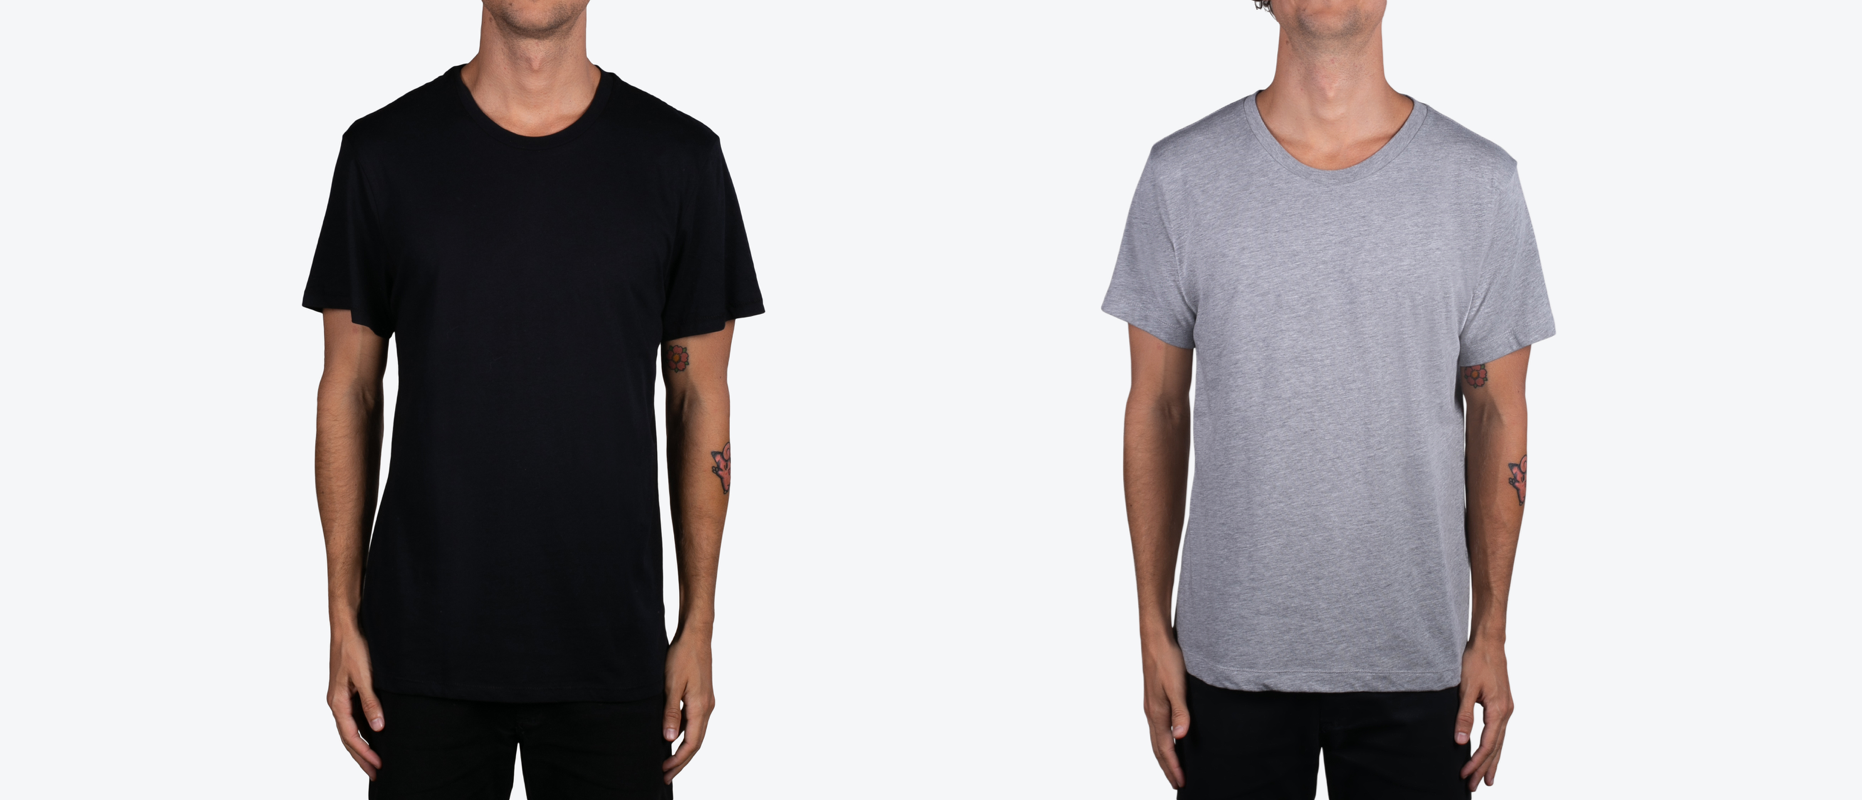 Alternative Apparel 6005 (left) and 1070 (right)